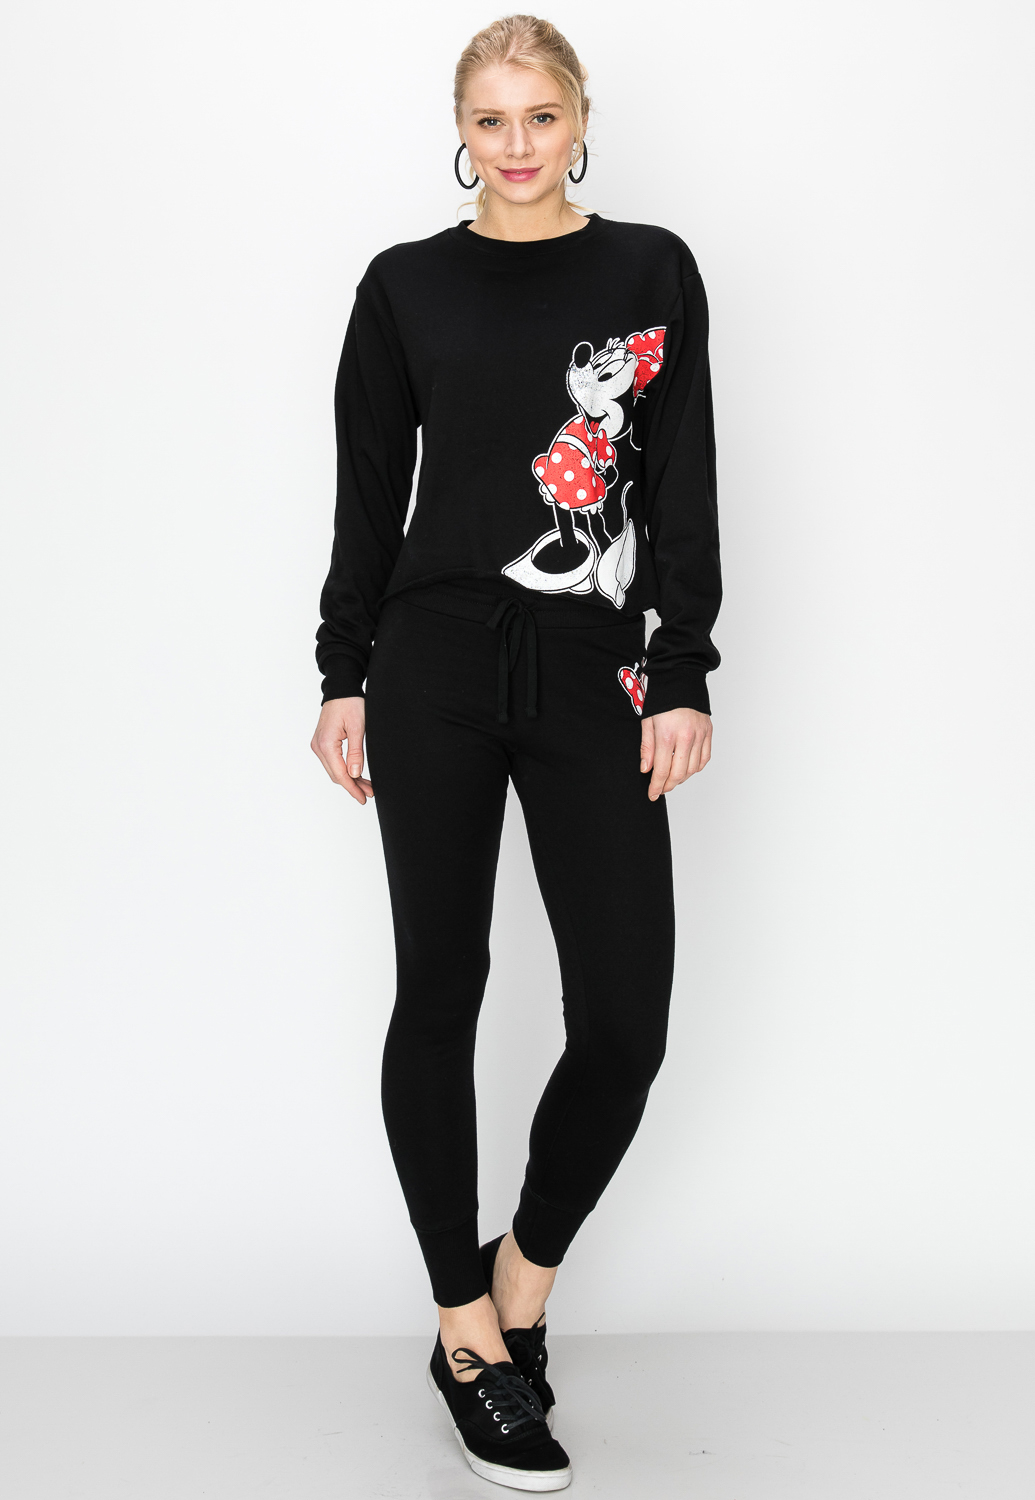 Minnie Mouse Graphic Cropped Sweatshirt